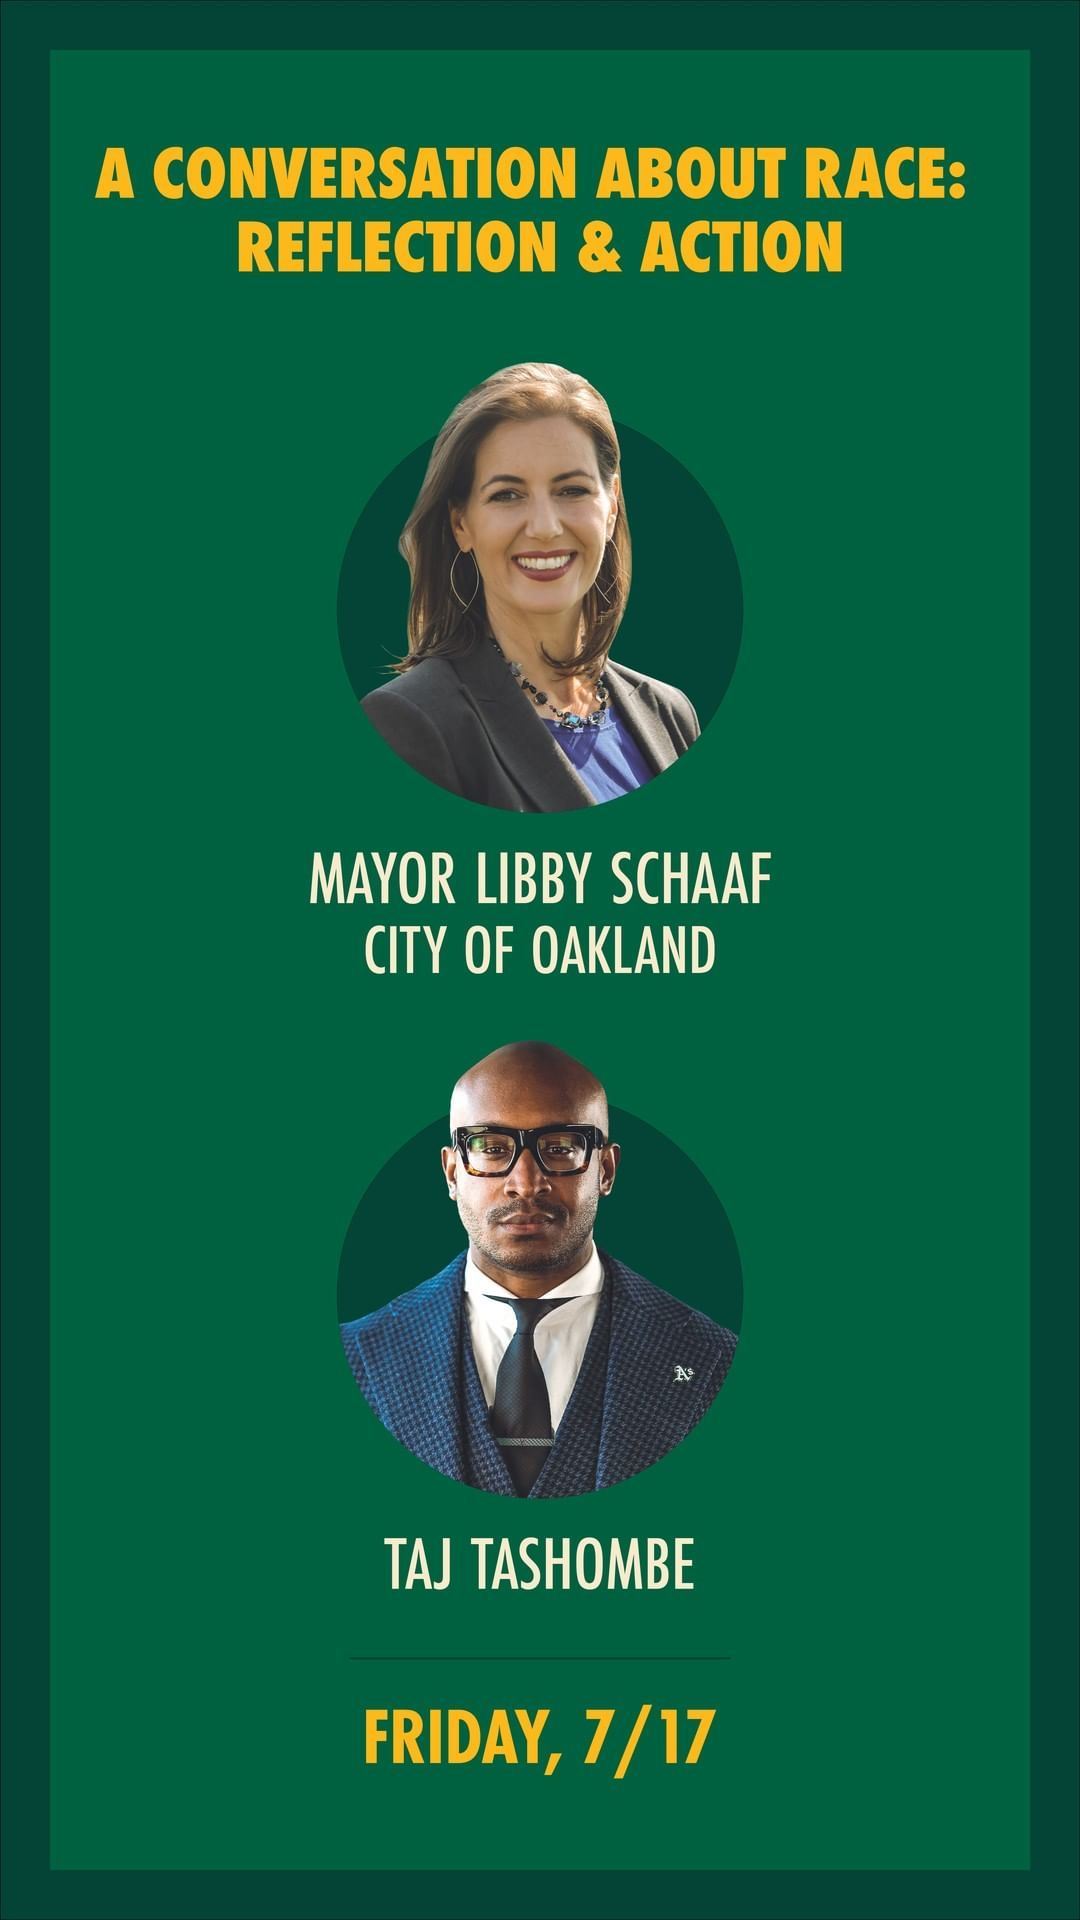 Oakland Athletics We Re Proud To Continue Our A Conversation About Race Reflection Action Serie In 2020 Oakland Athletics Oakland Athlete